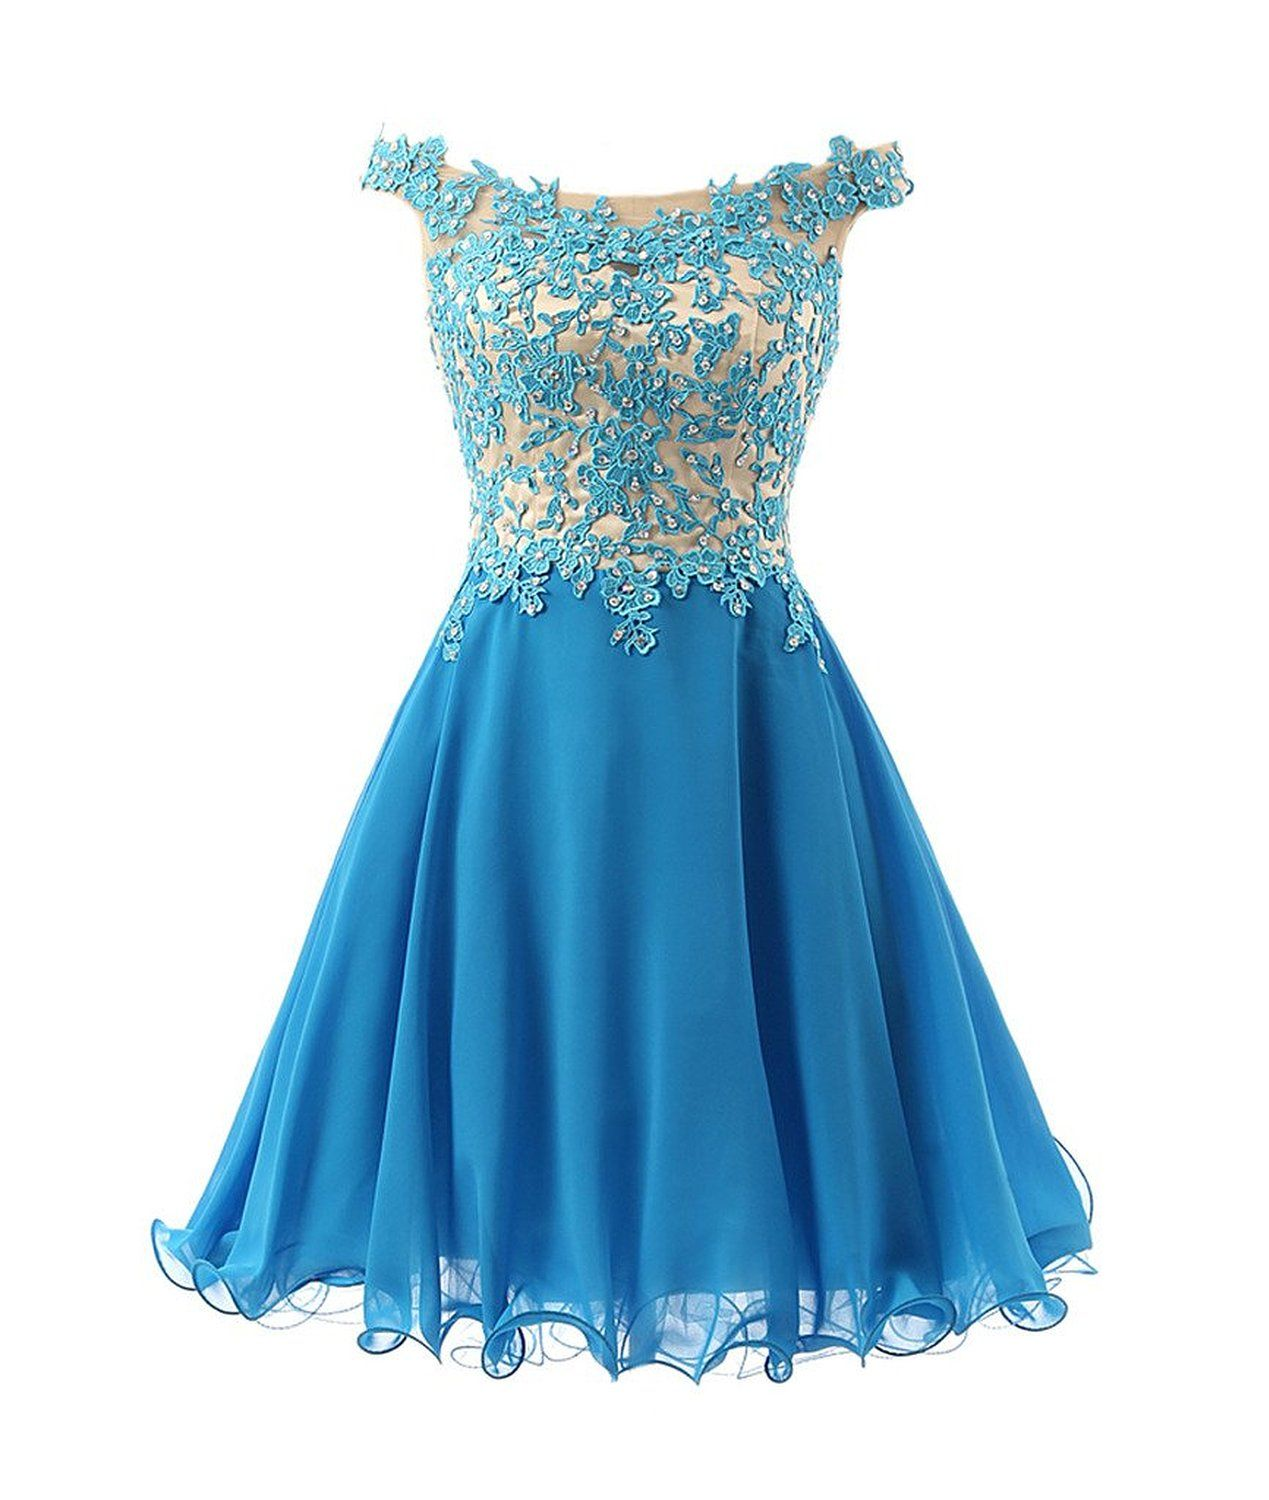 Fnks womenus straps lace bodice short prom gown homecoming party